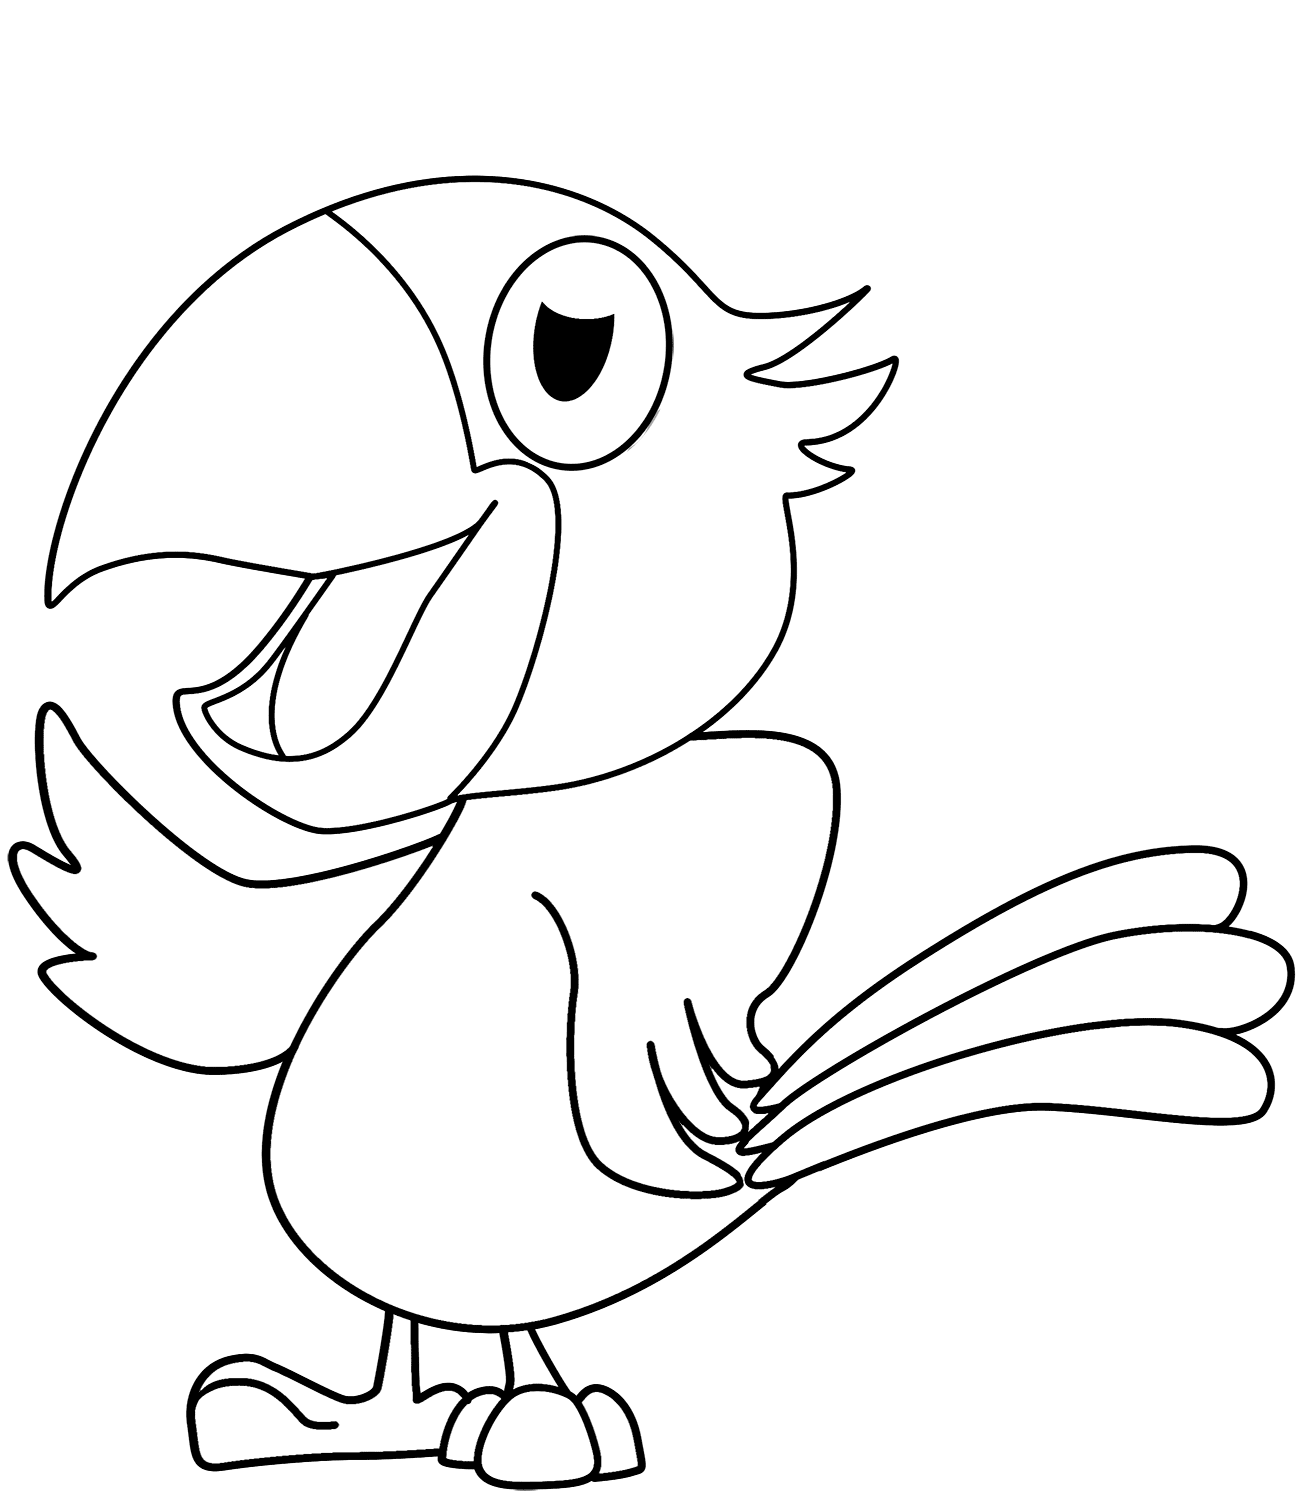 Cartoon parrot coloring page